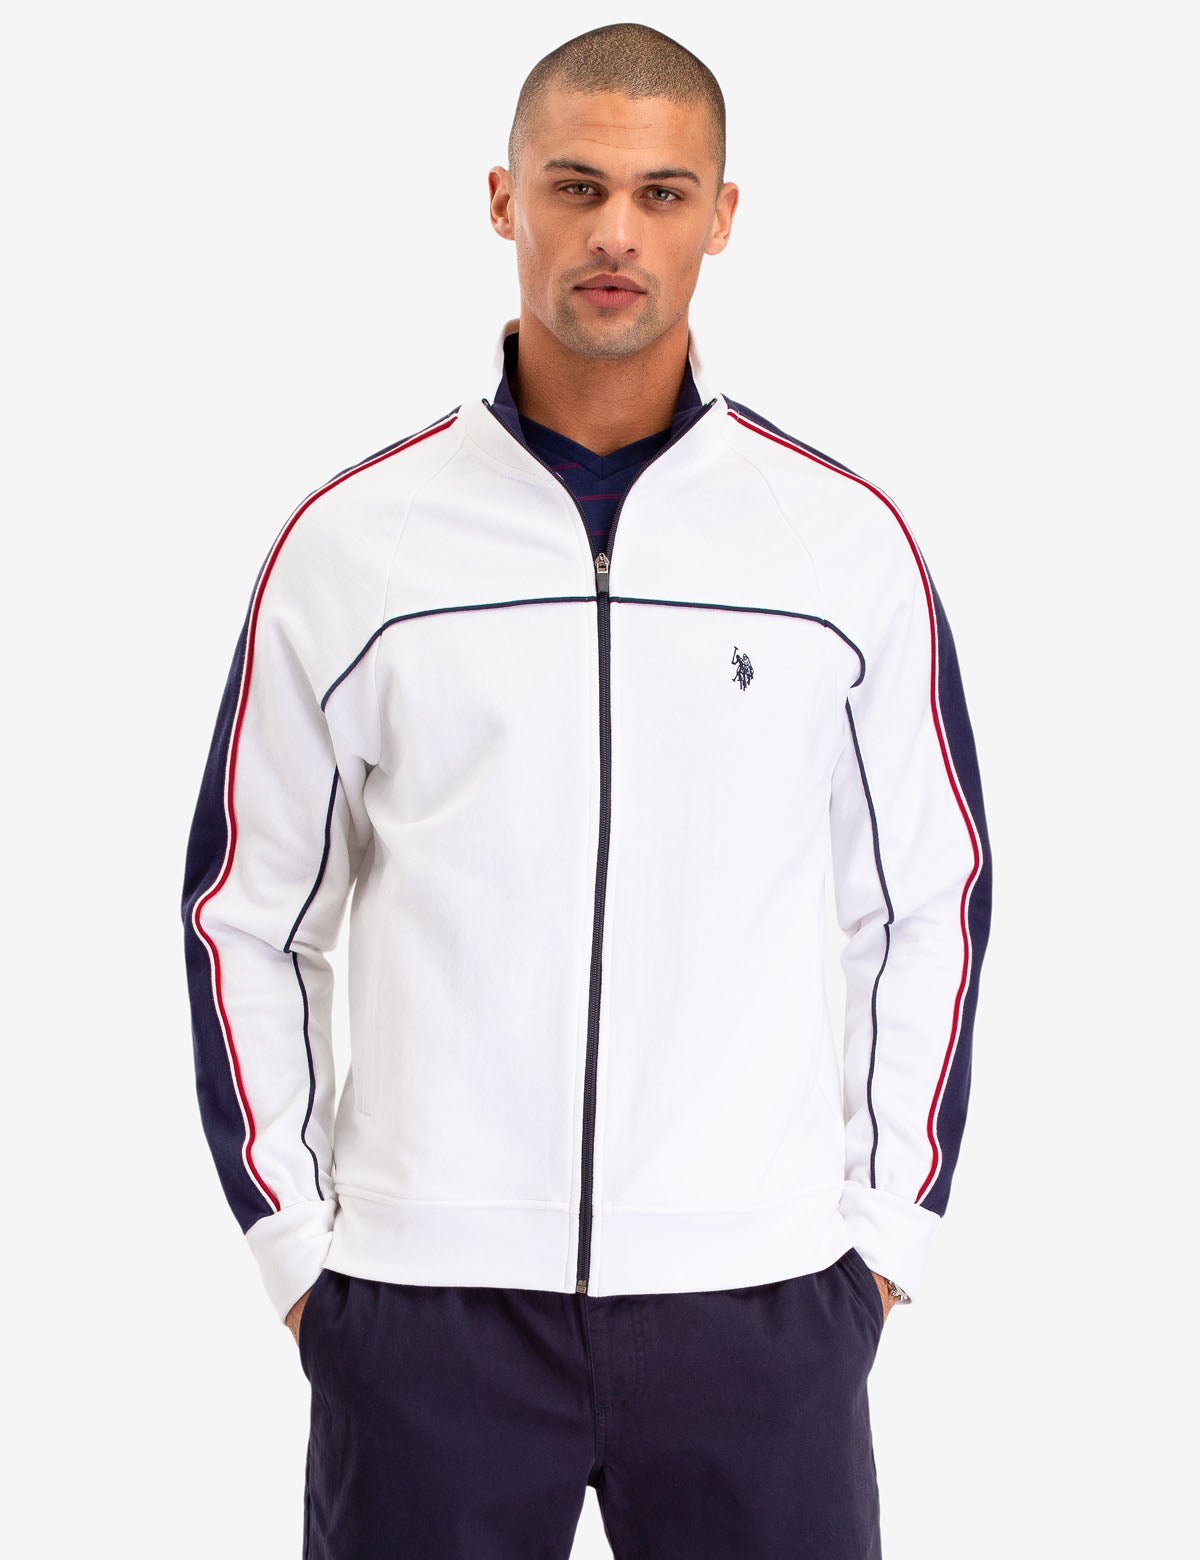 USPA TRACK JACKET WITH PIPING